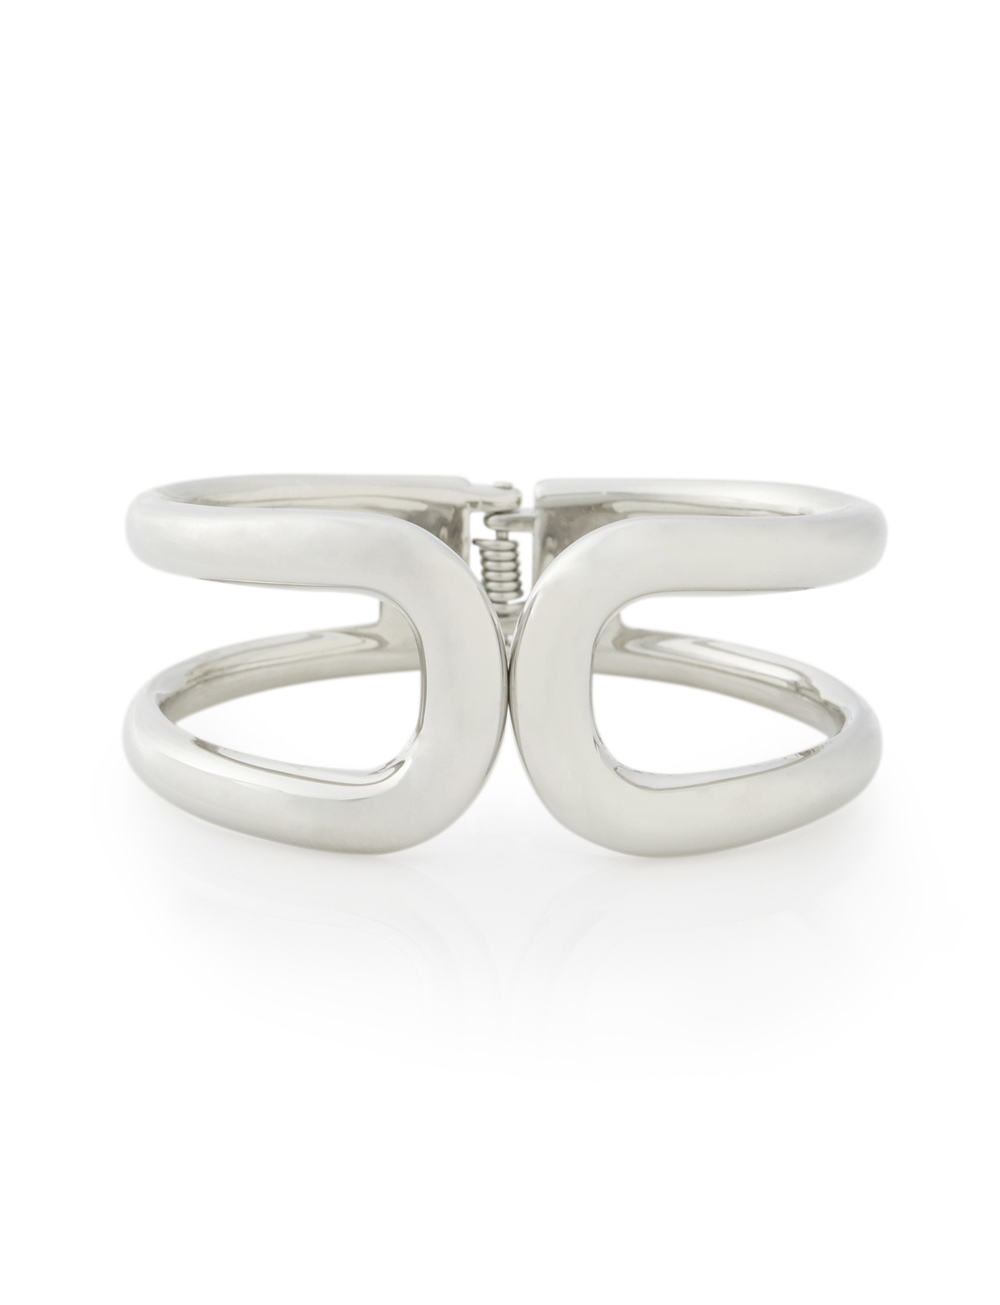 Curve hinge bracelet. The Limited. Was: $26.95 Today: $16.17.